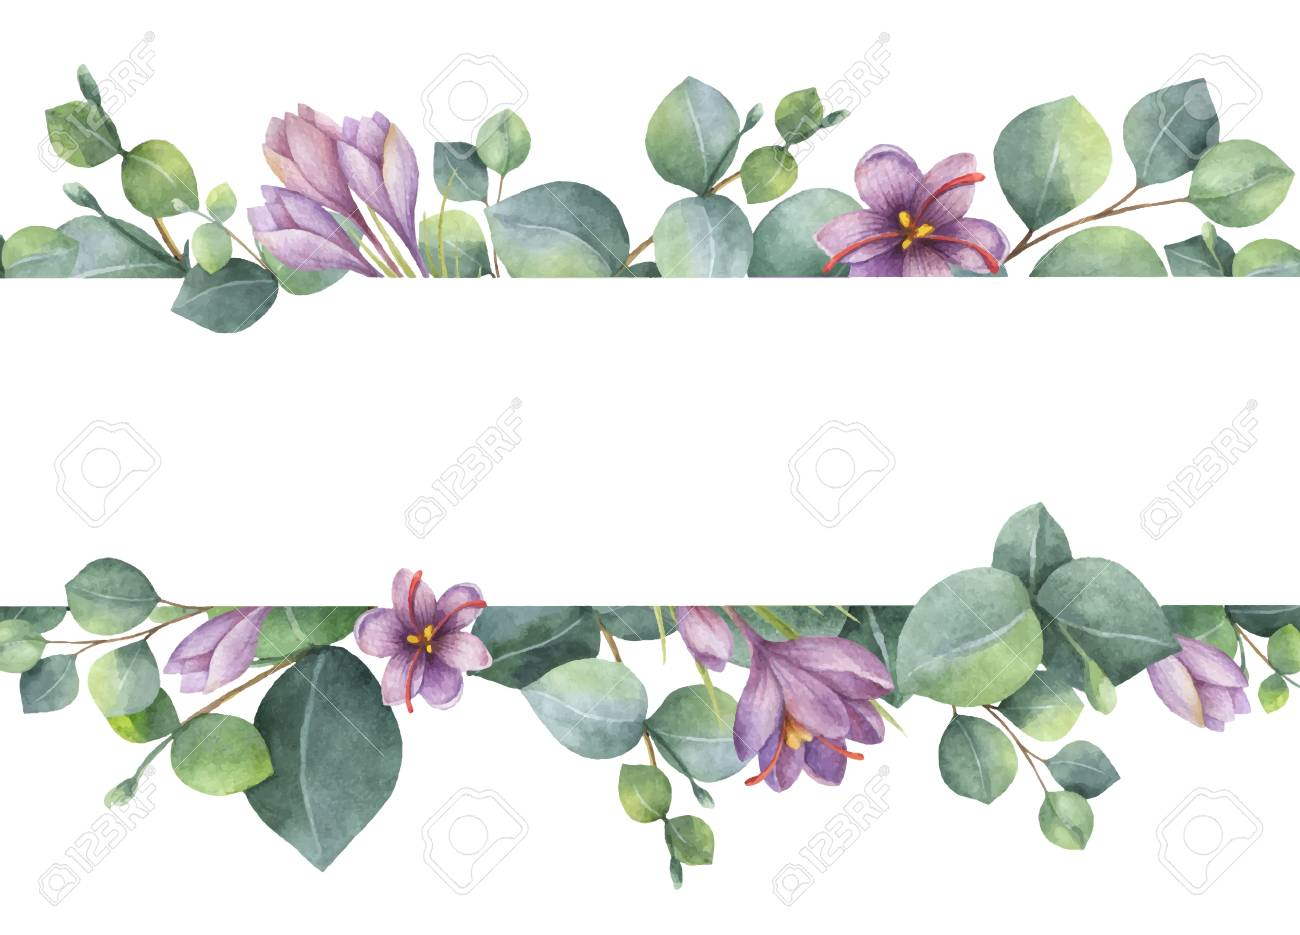 Watercolor vector wreath with green eucalyptus leaves, purple flowers and branches. - 94814221